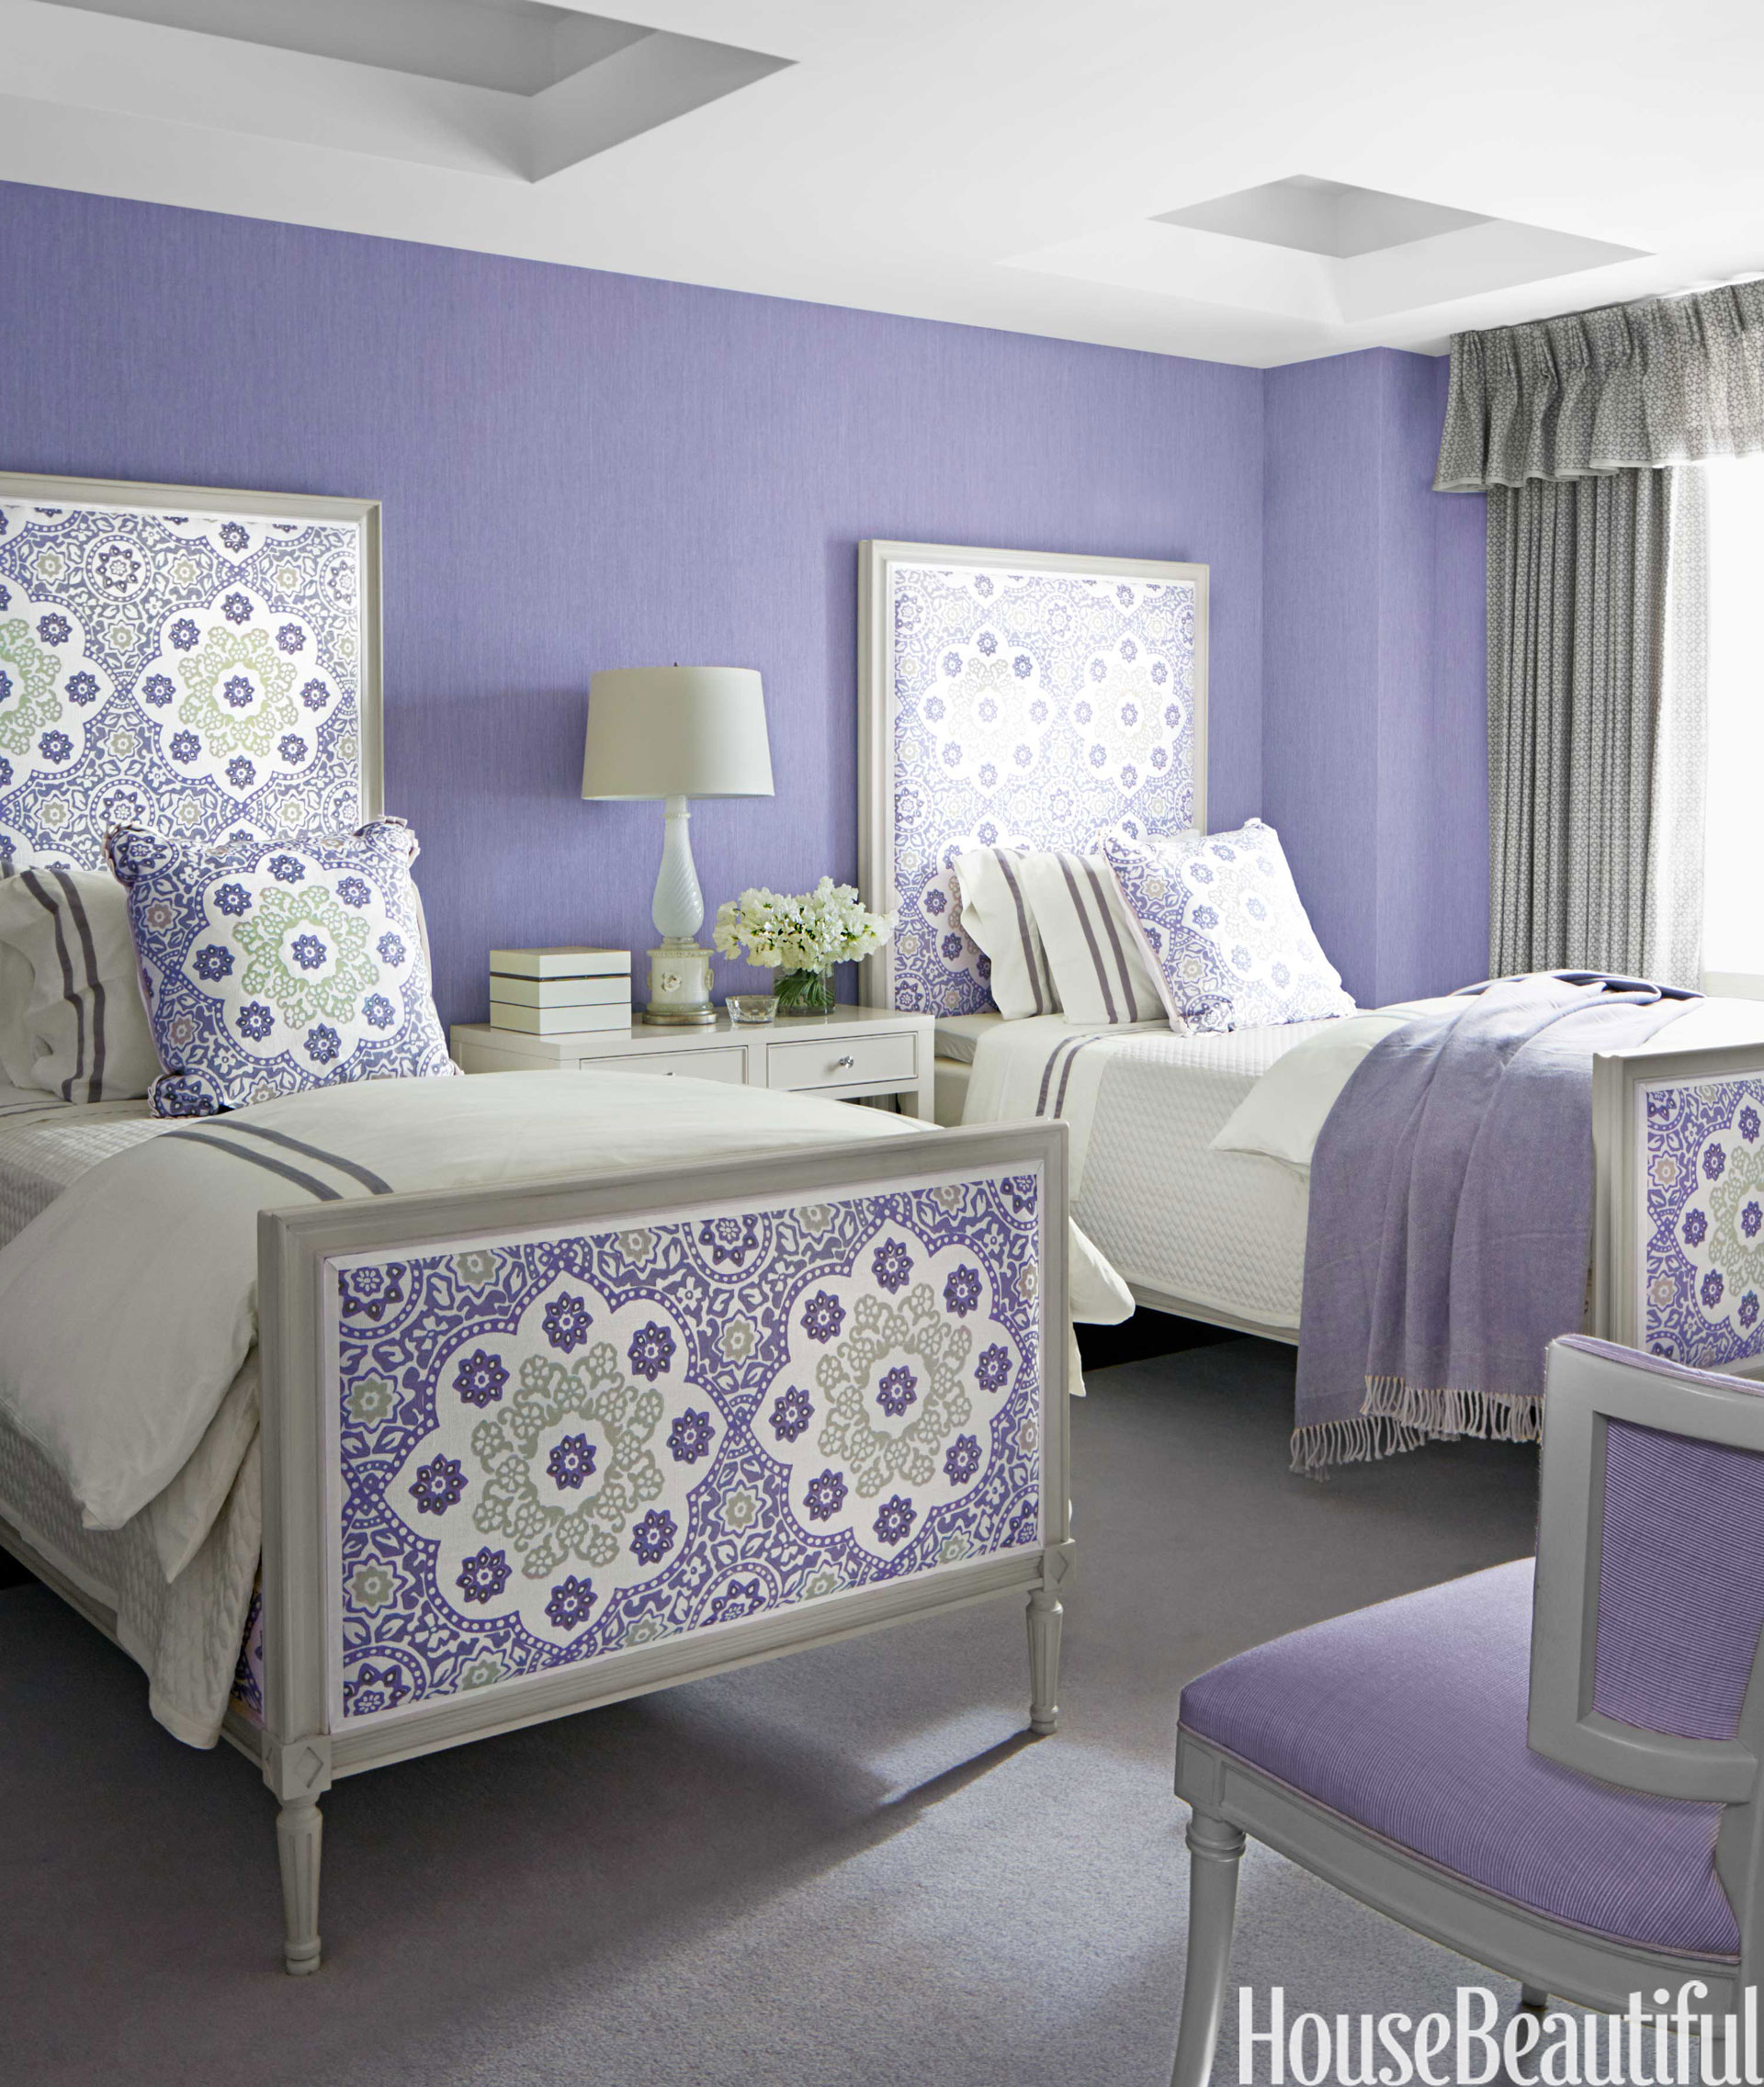 Relaxing Bedroom Paint Colors: Relaxing Paint Colors